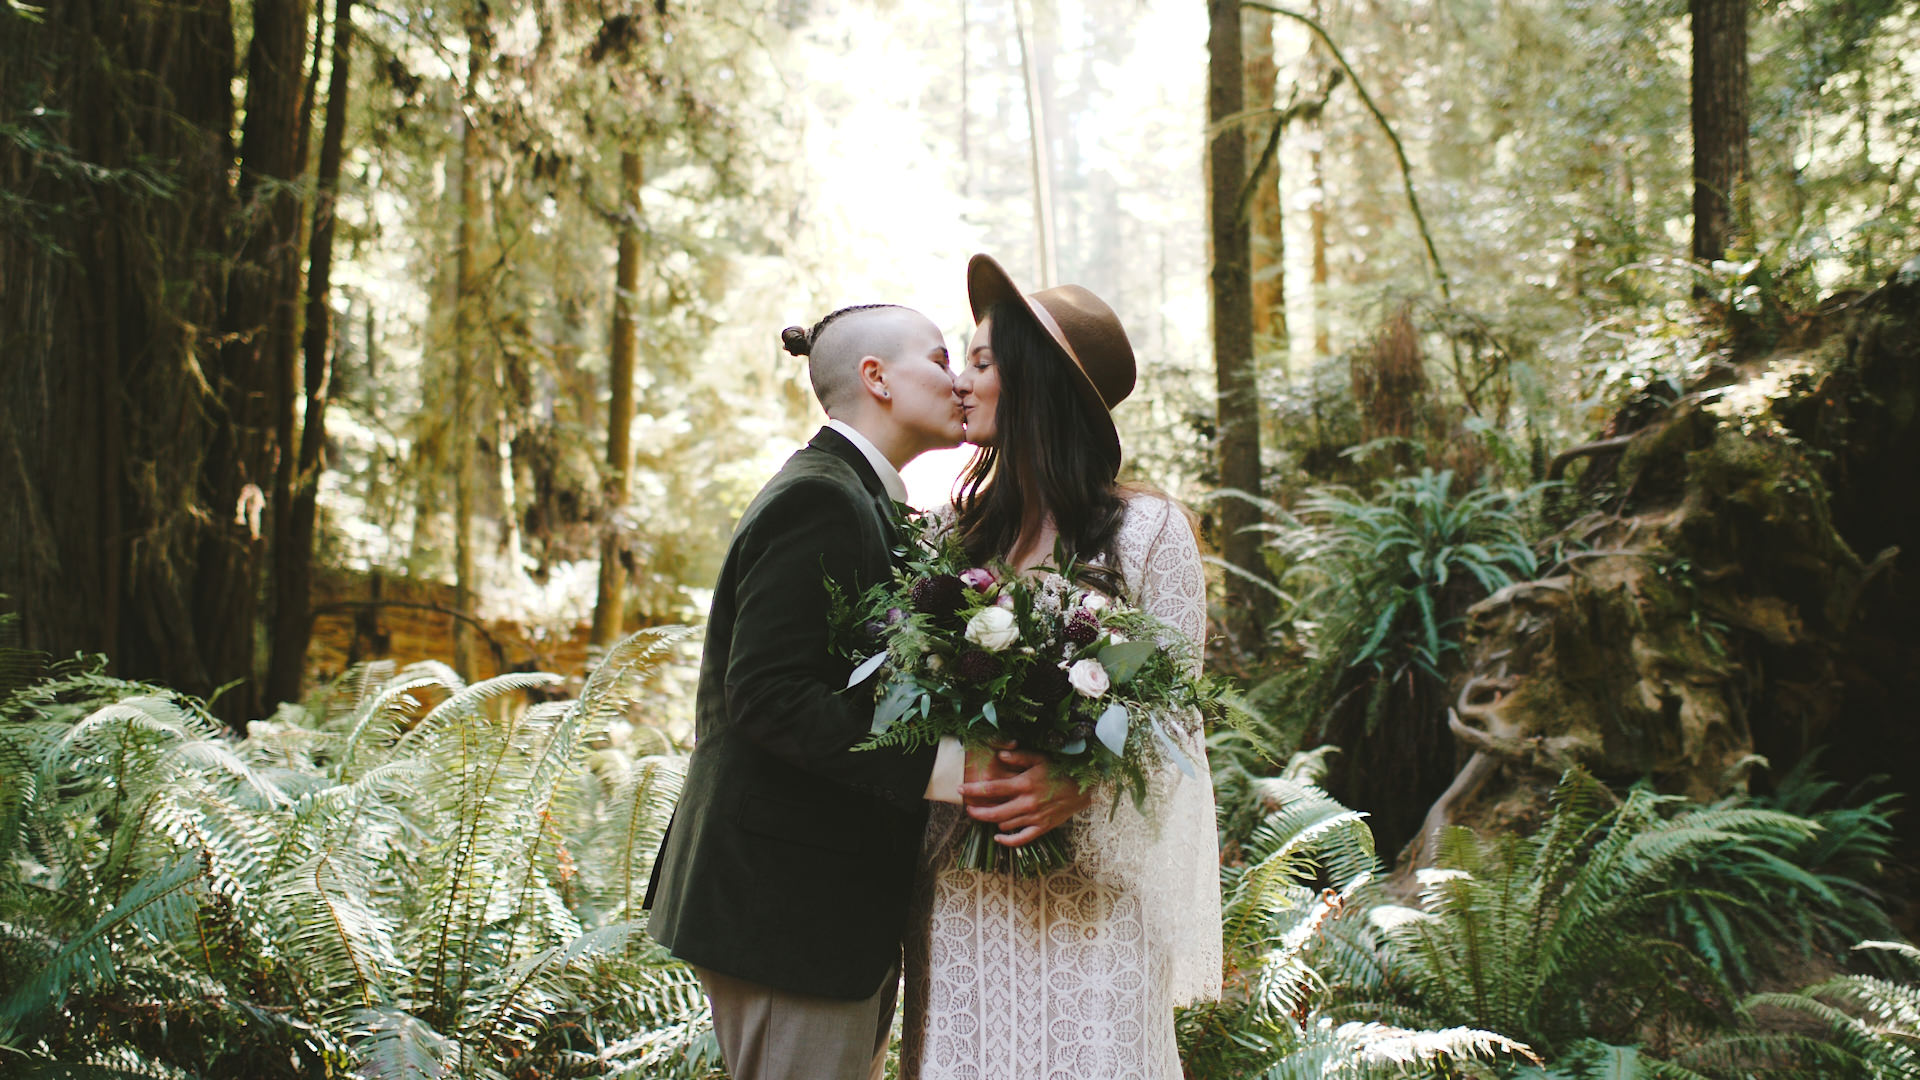 Sydney + Chelsea | Crescent City, California | The Redwoods